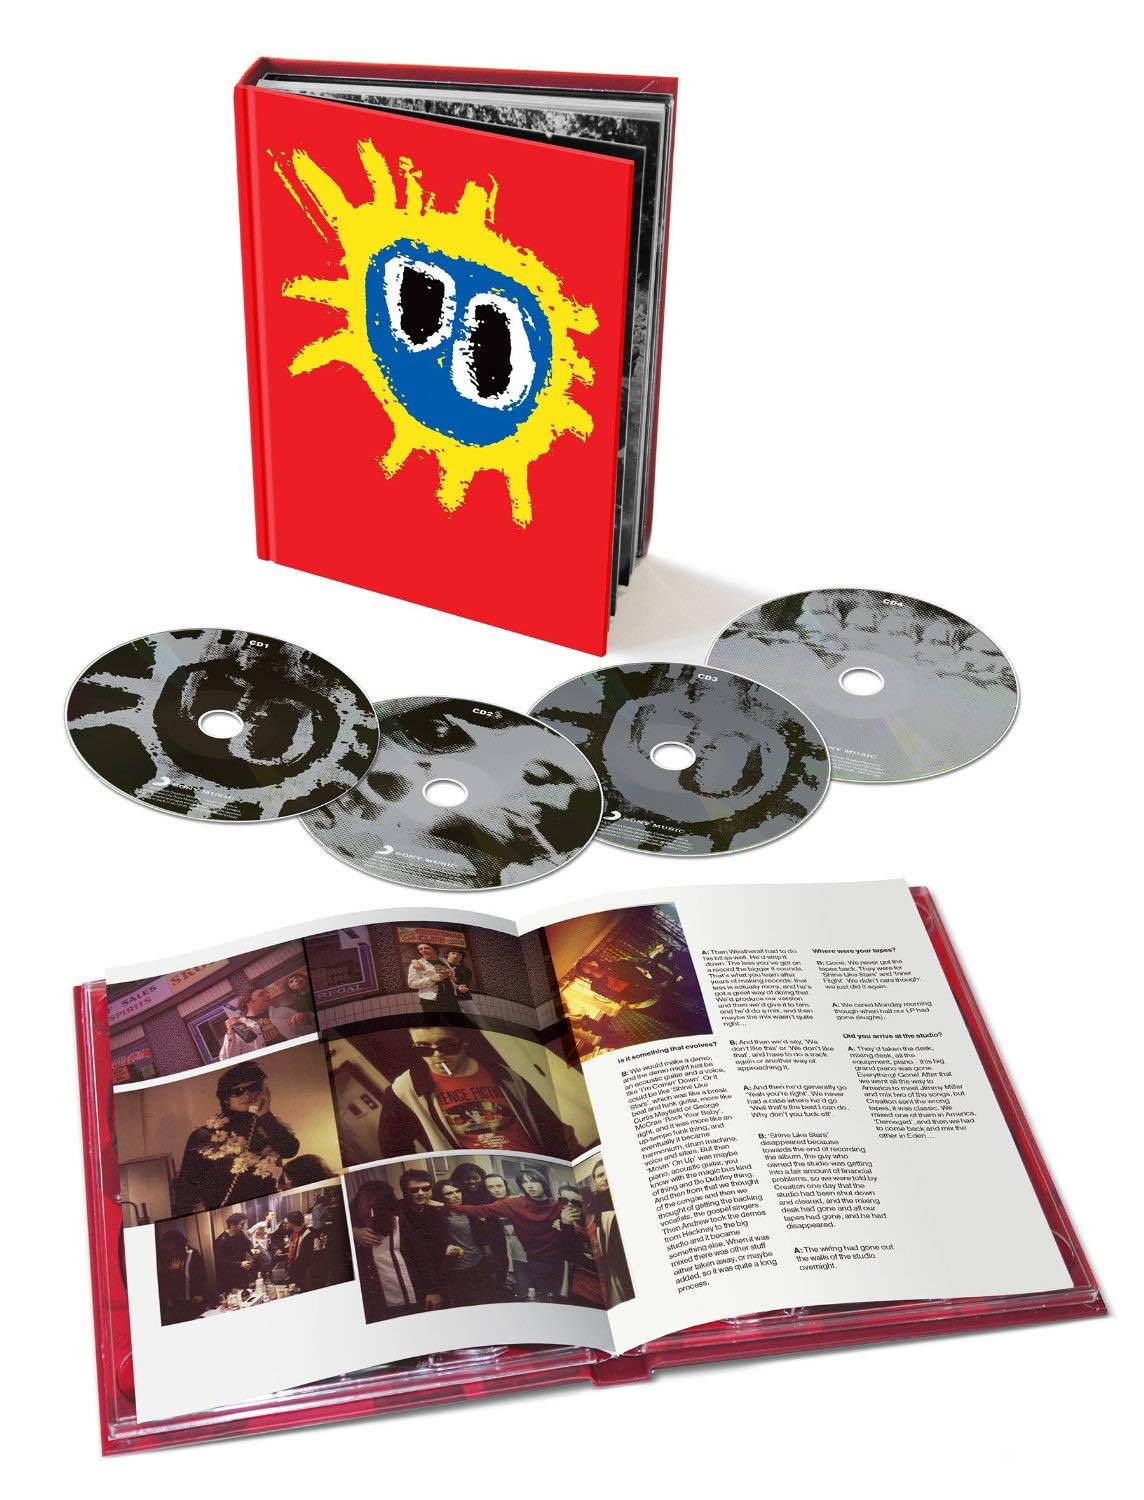 Screamadelica 4CD book set